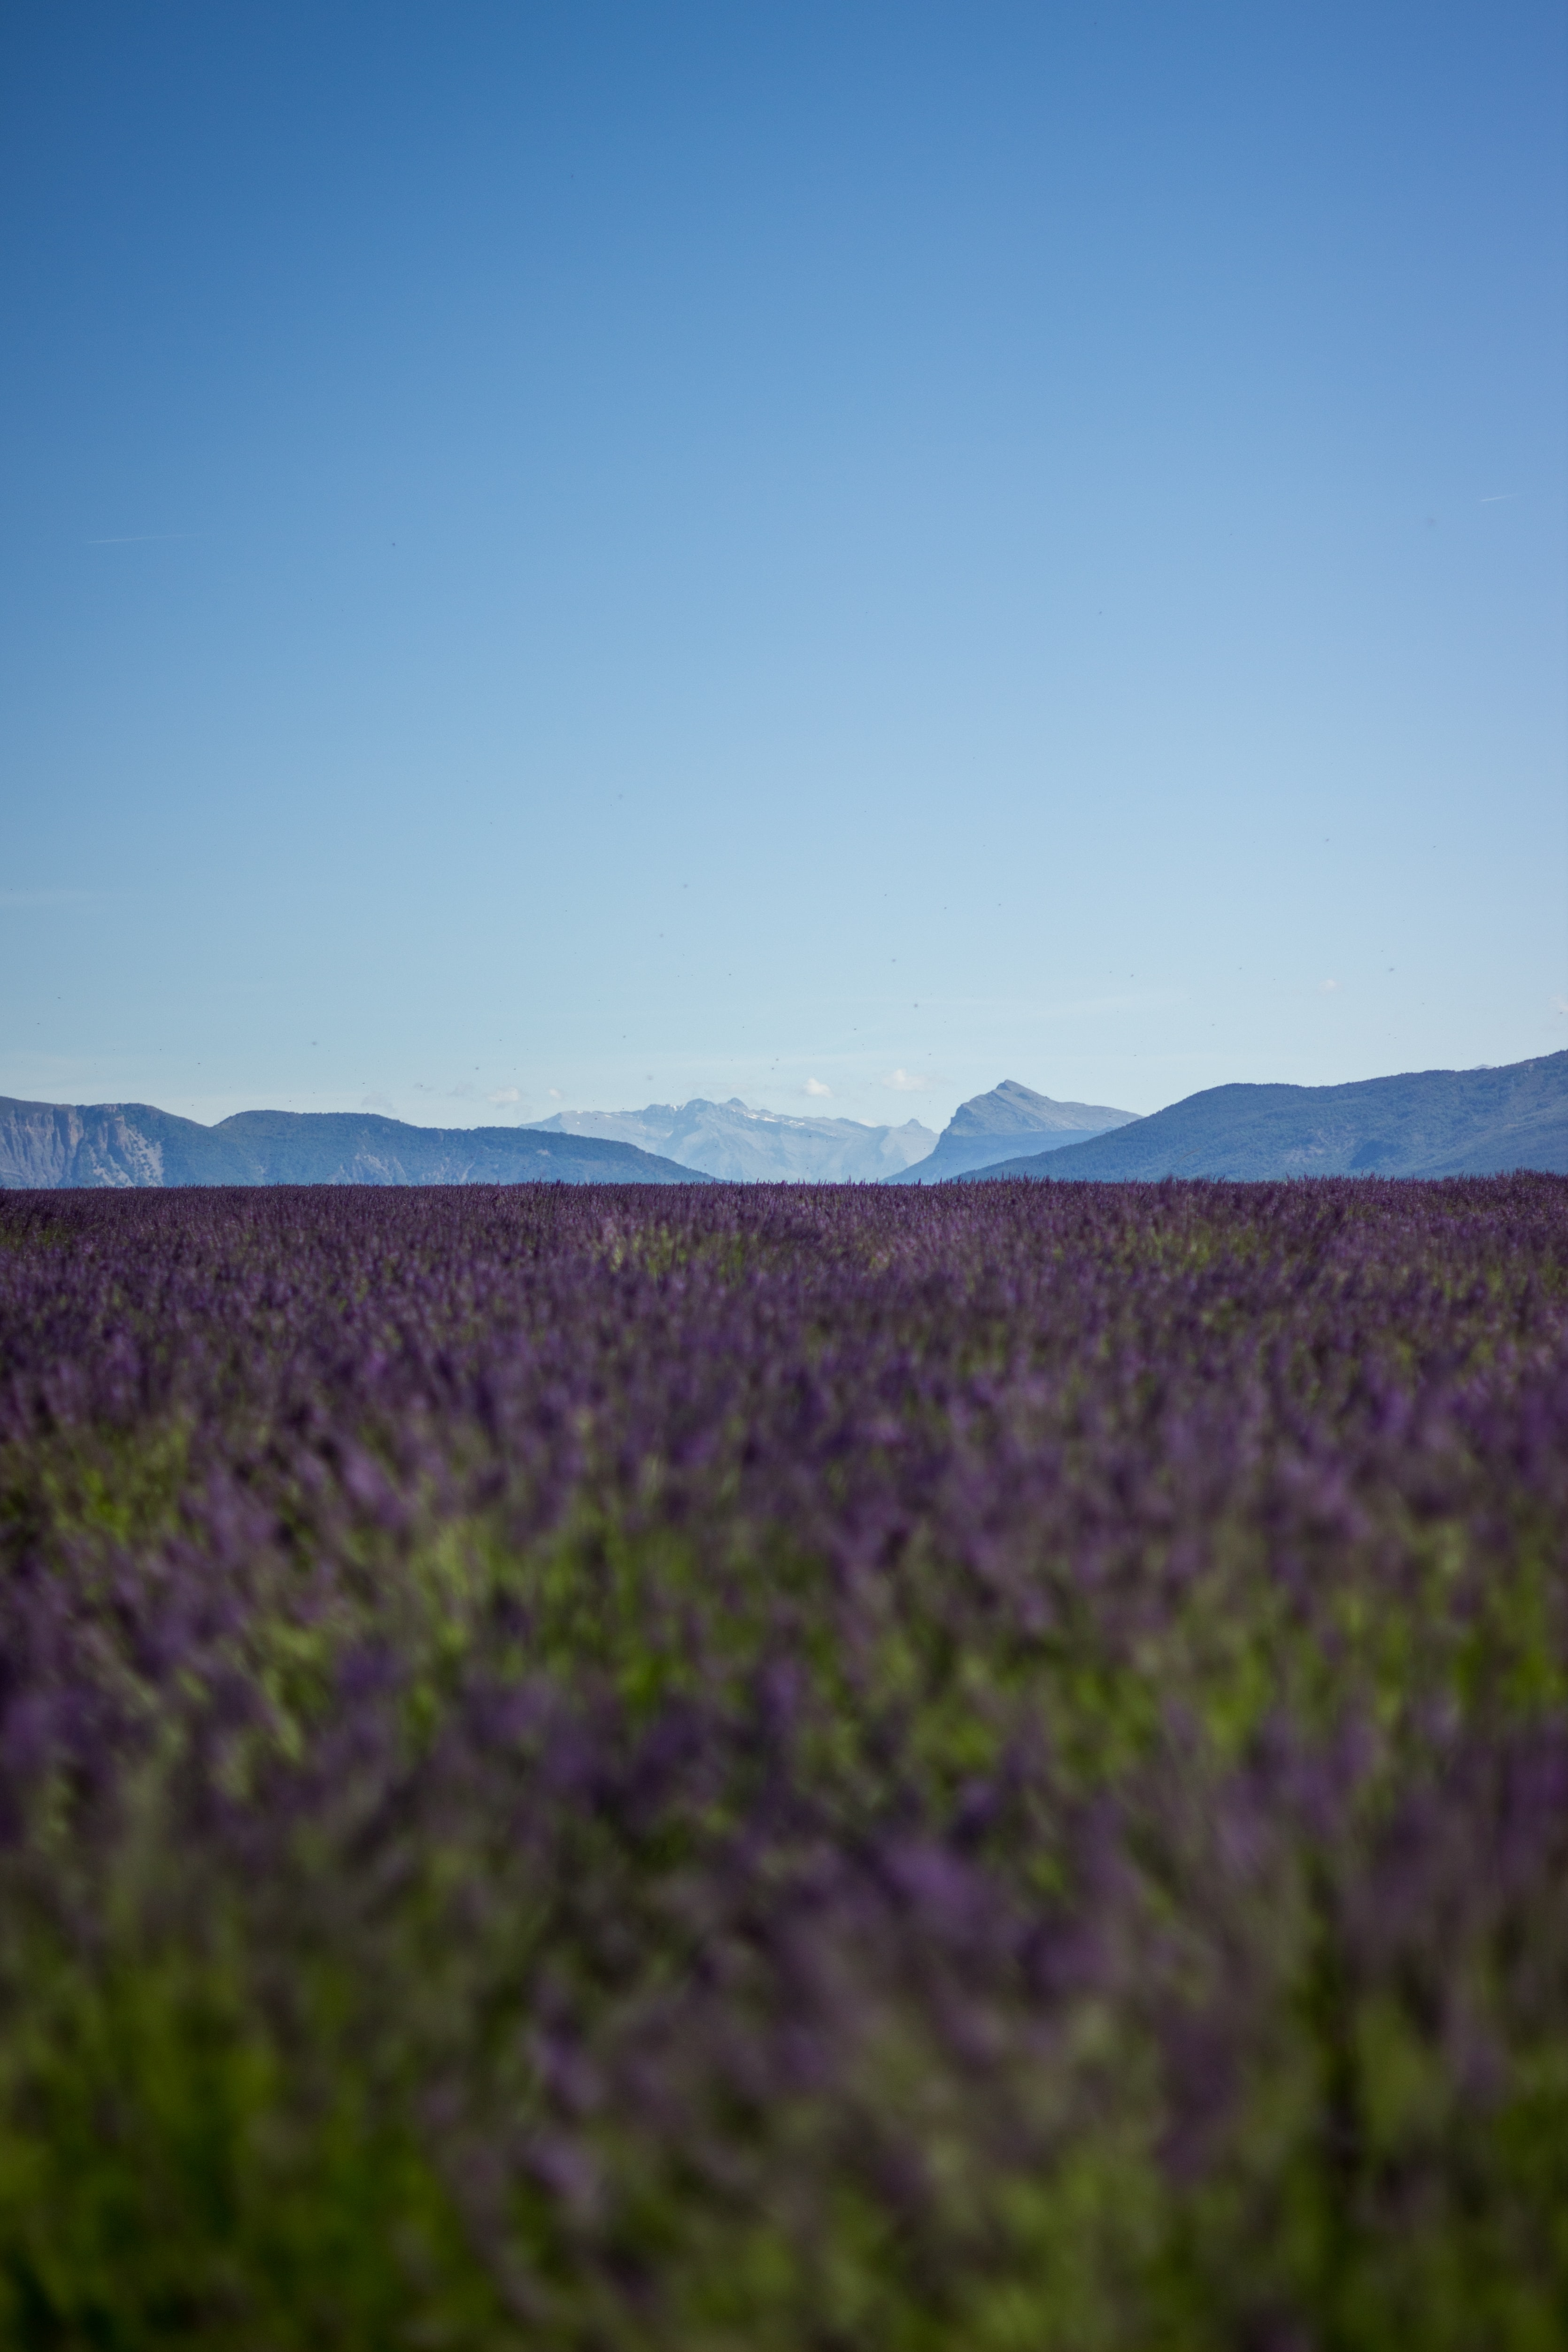 purple lavender field overlooking mountains during daytime